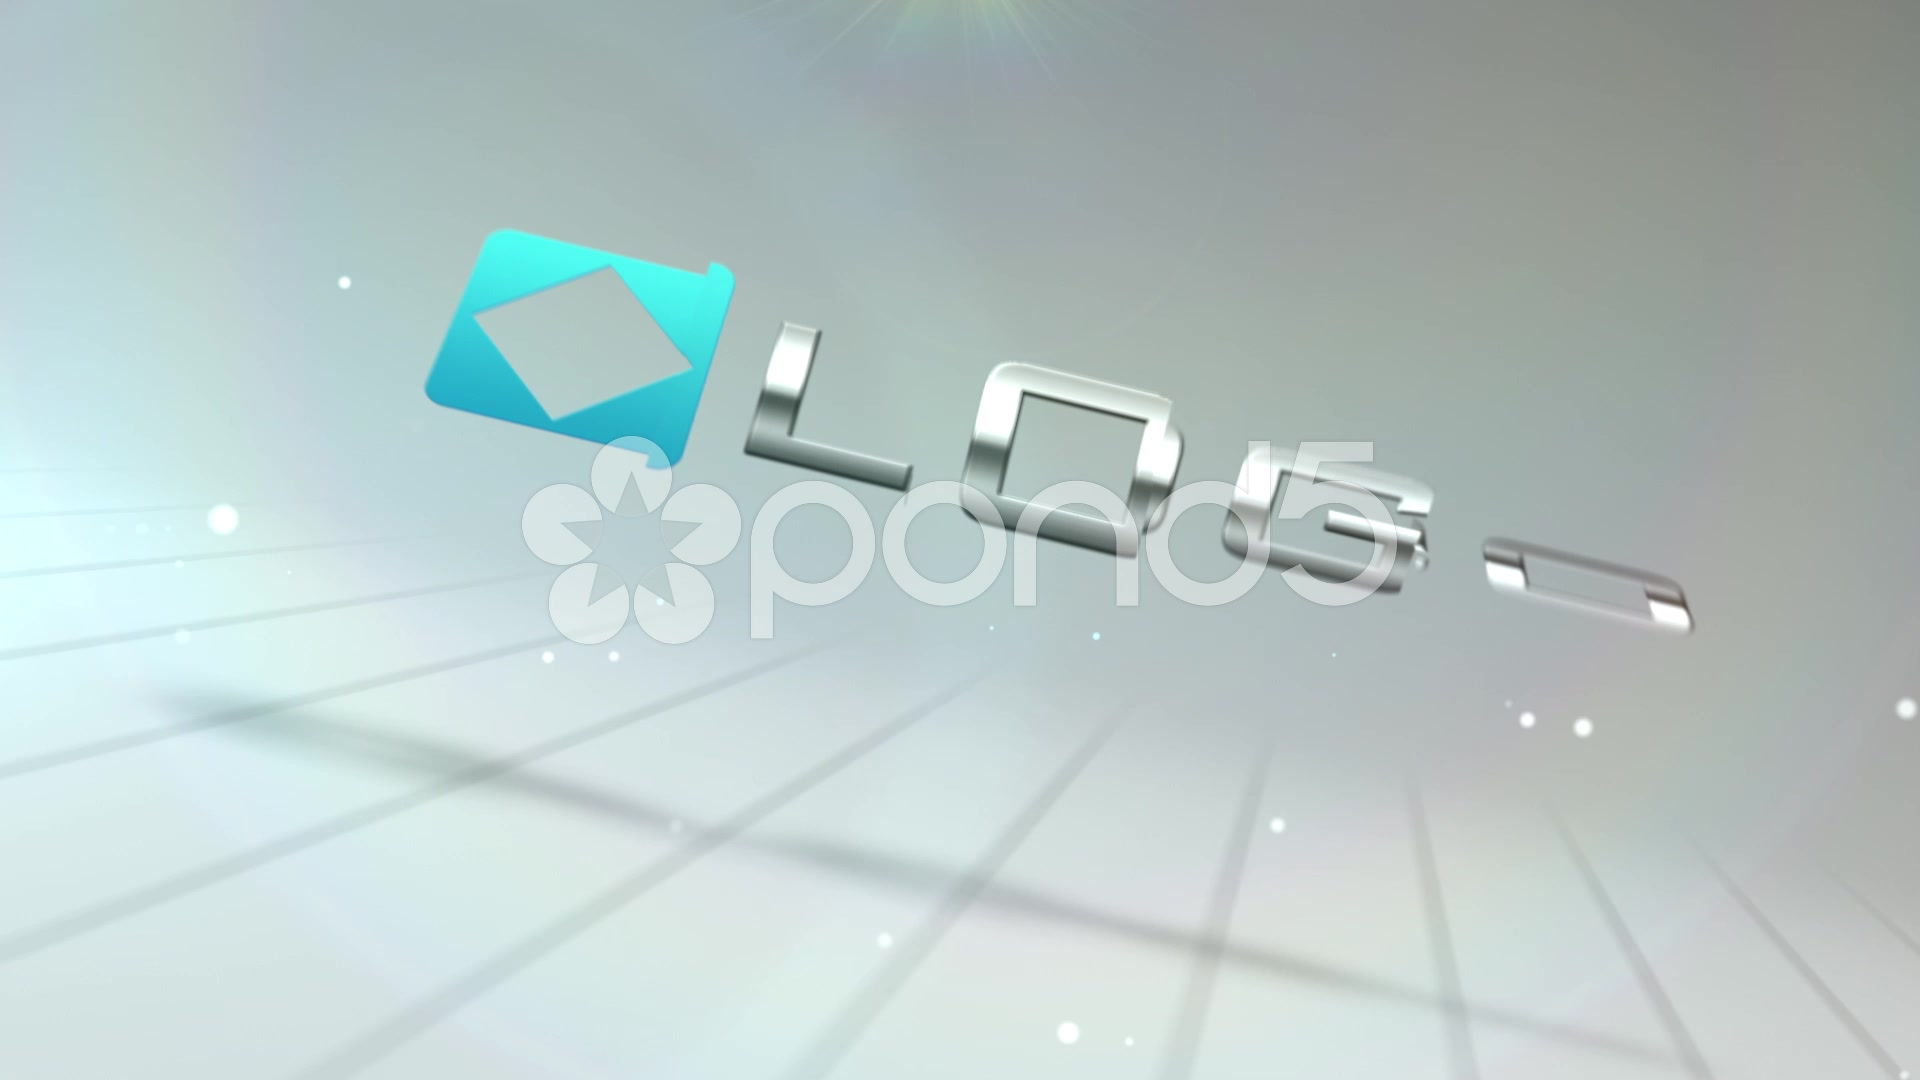 After Effects Project - Pond5 3D Business Logo Pieces Spin Text Reveal Tran ...